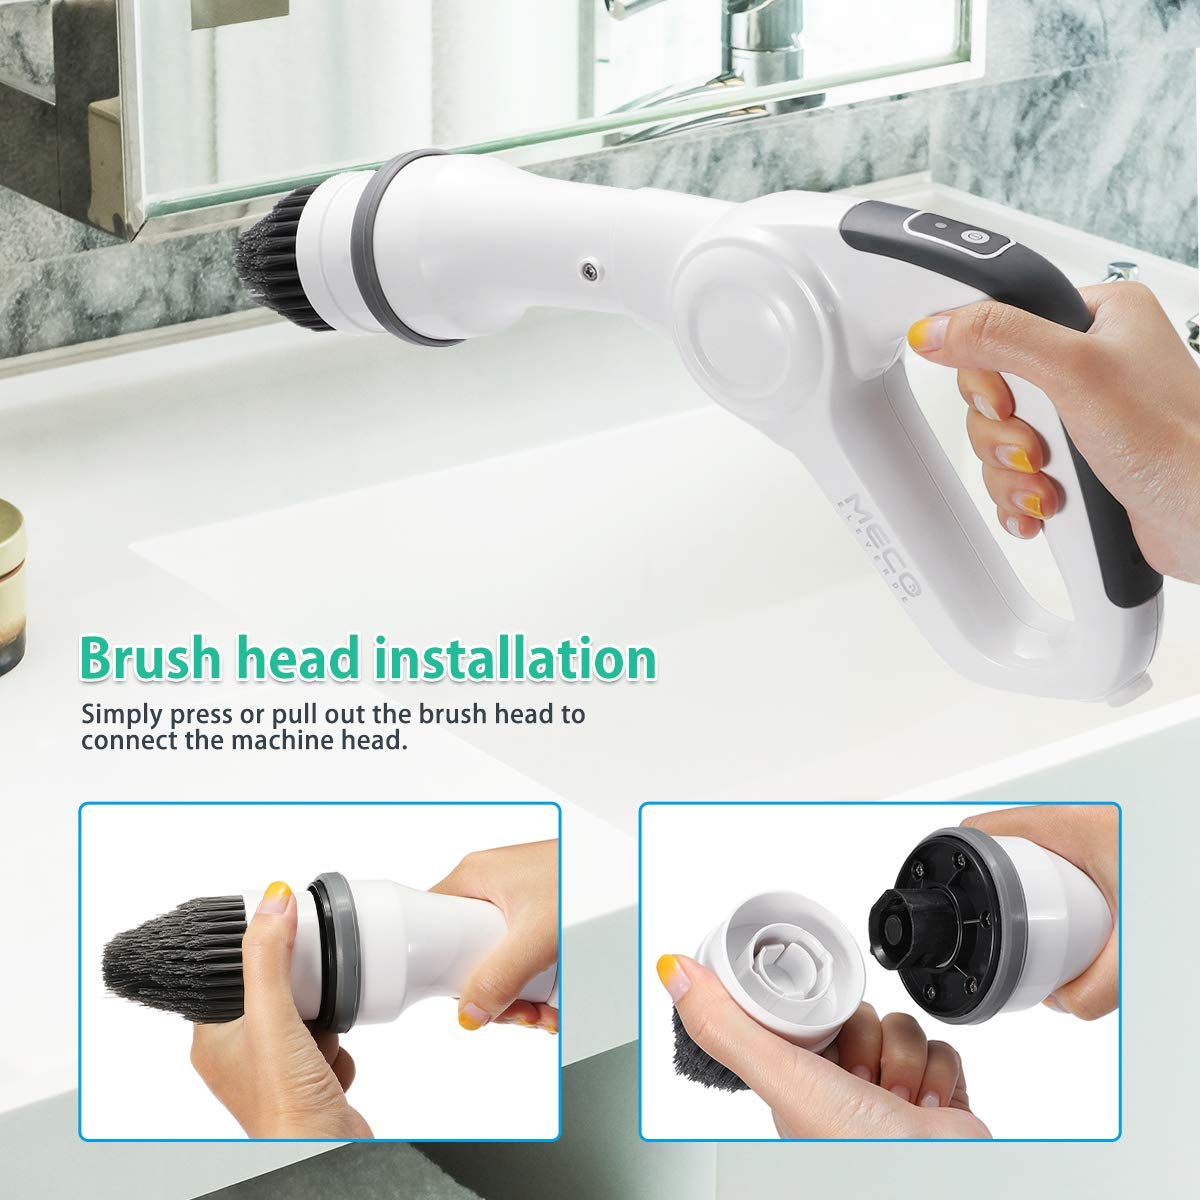 MECO Electric Spin Scrubber Power Cordless Tub and Tile Scrubber, 360 Handheld Cleaning supplies with 3 Replaceable Brush Heads, High Rotation for Bathroom, Floor, Kitchen, Car, Sink, Wall, Window by MECO (Image #5)